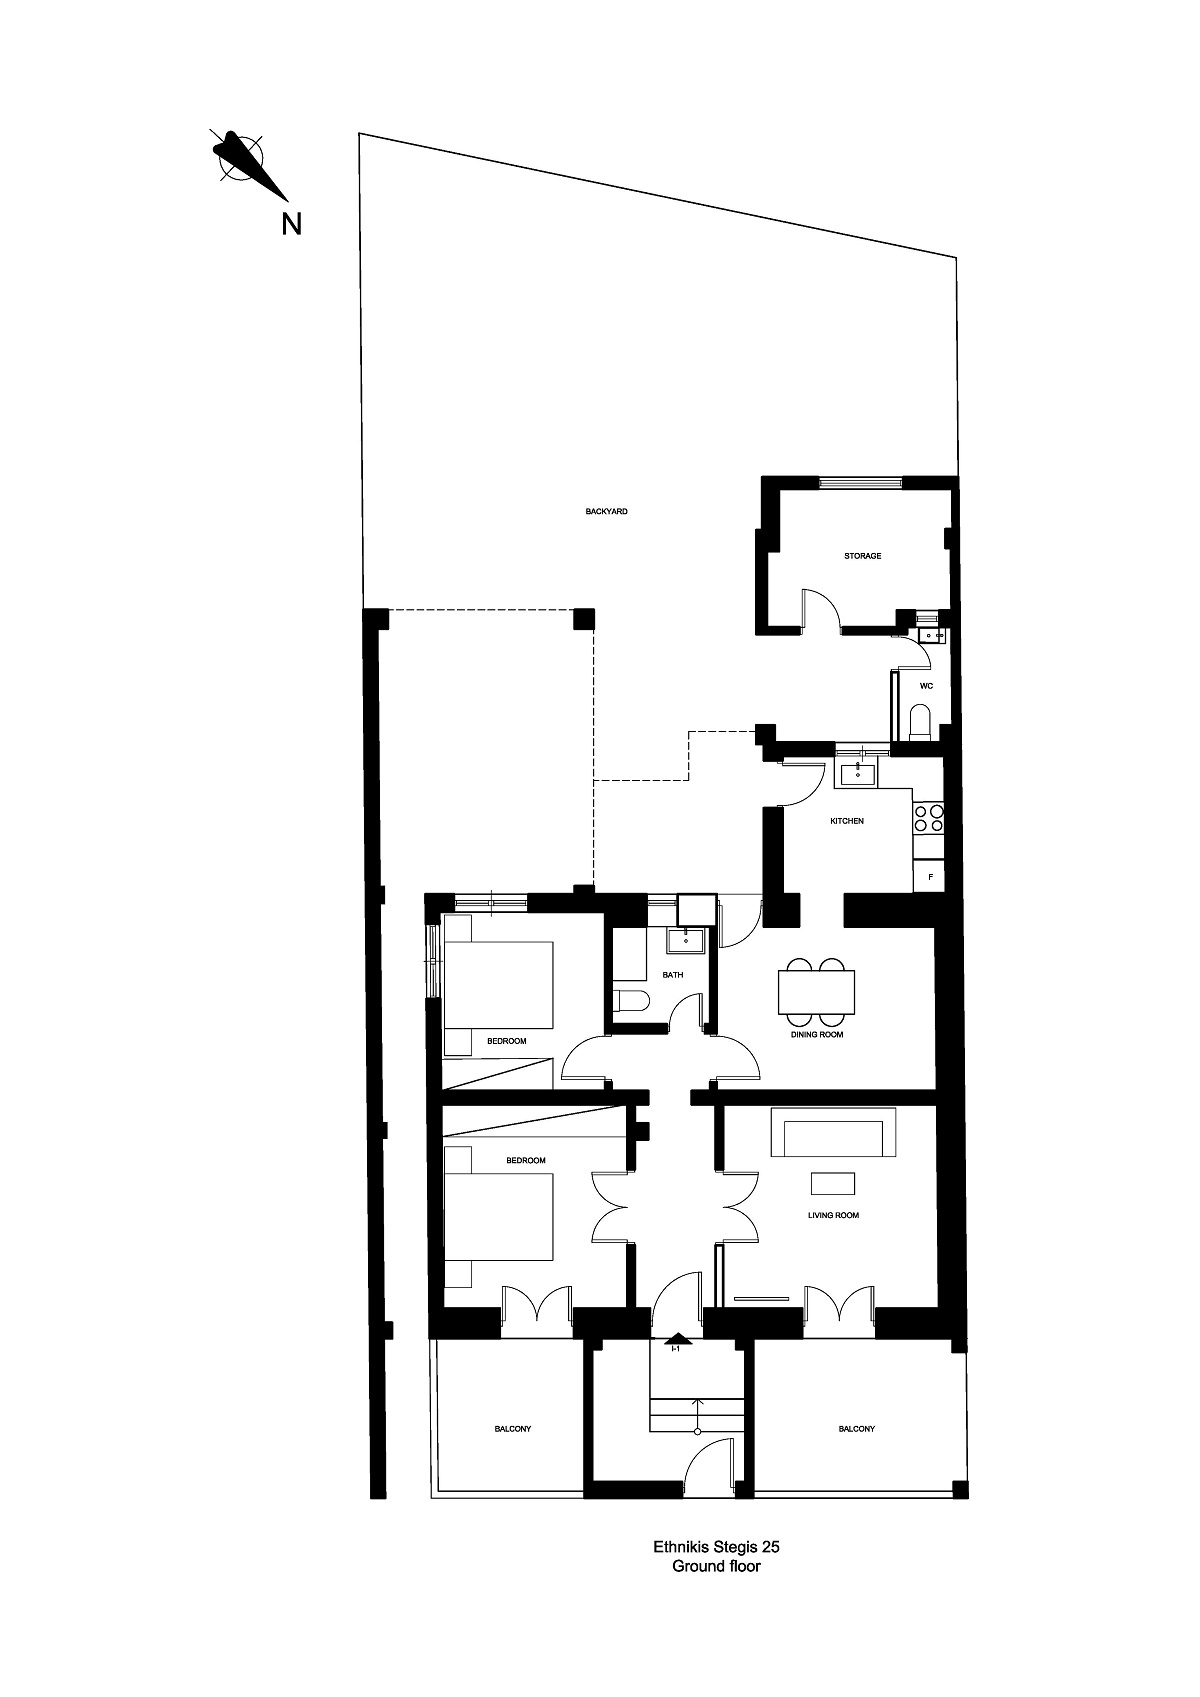 Ethnikis Stegis 25 ground floor plan